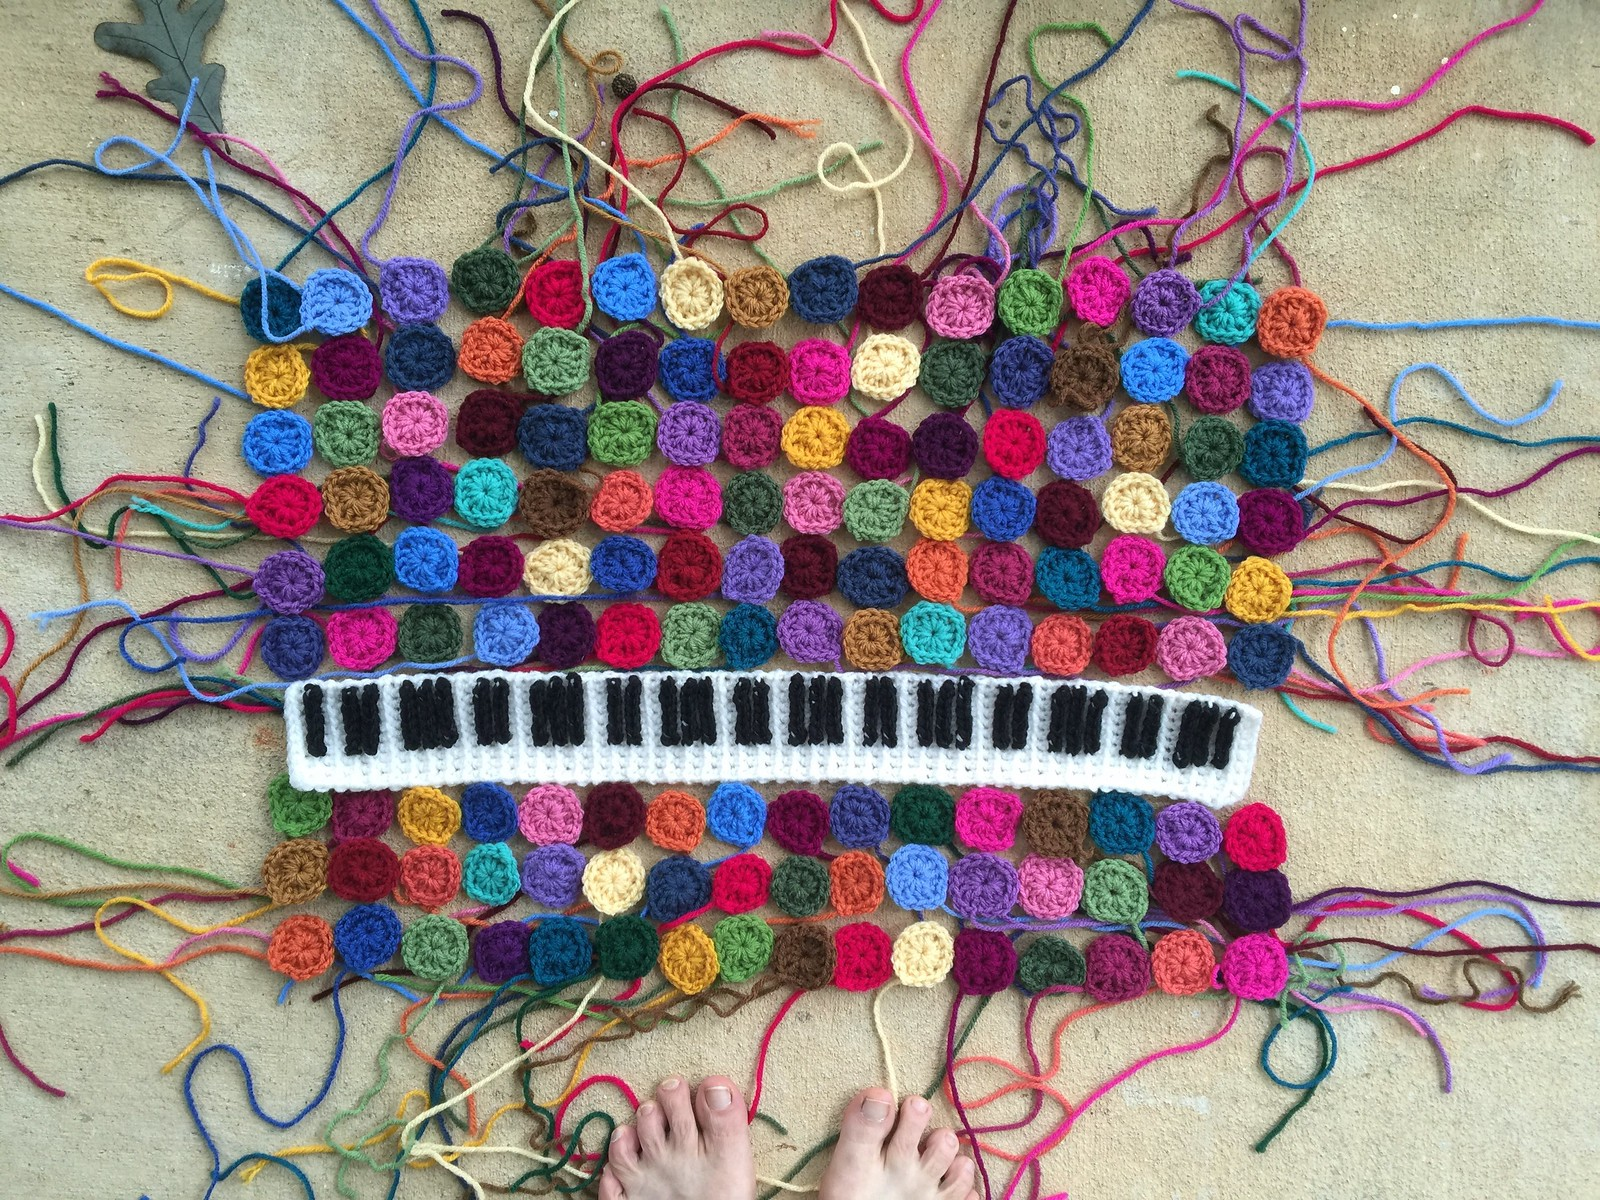 A crochet keyboard and more than one hundred one-round granny squares